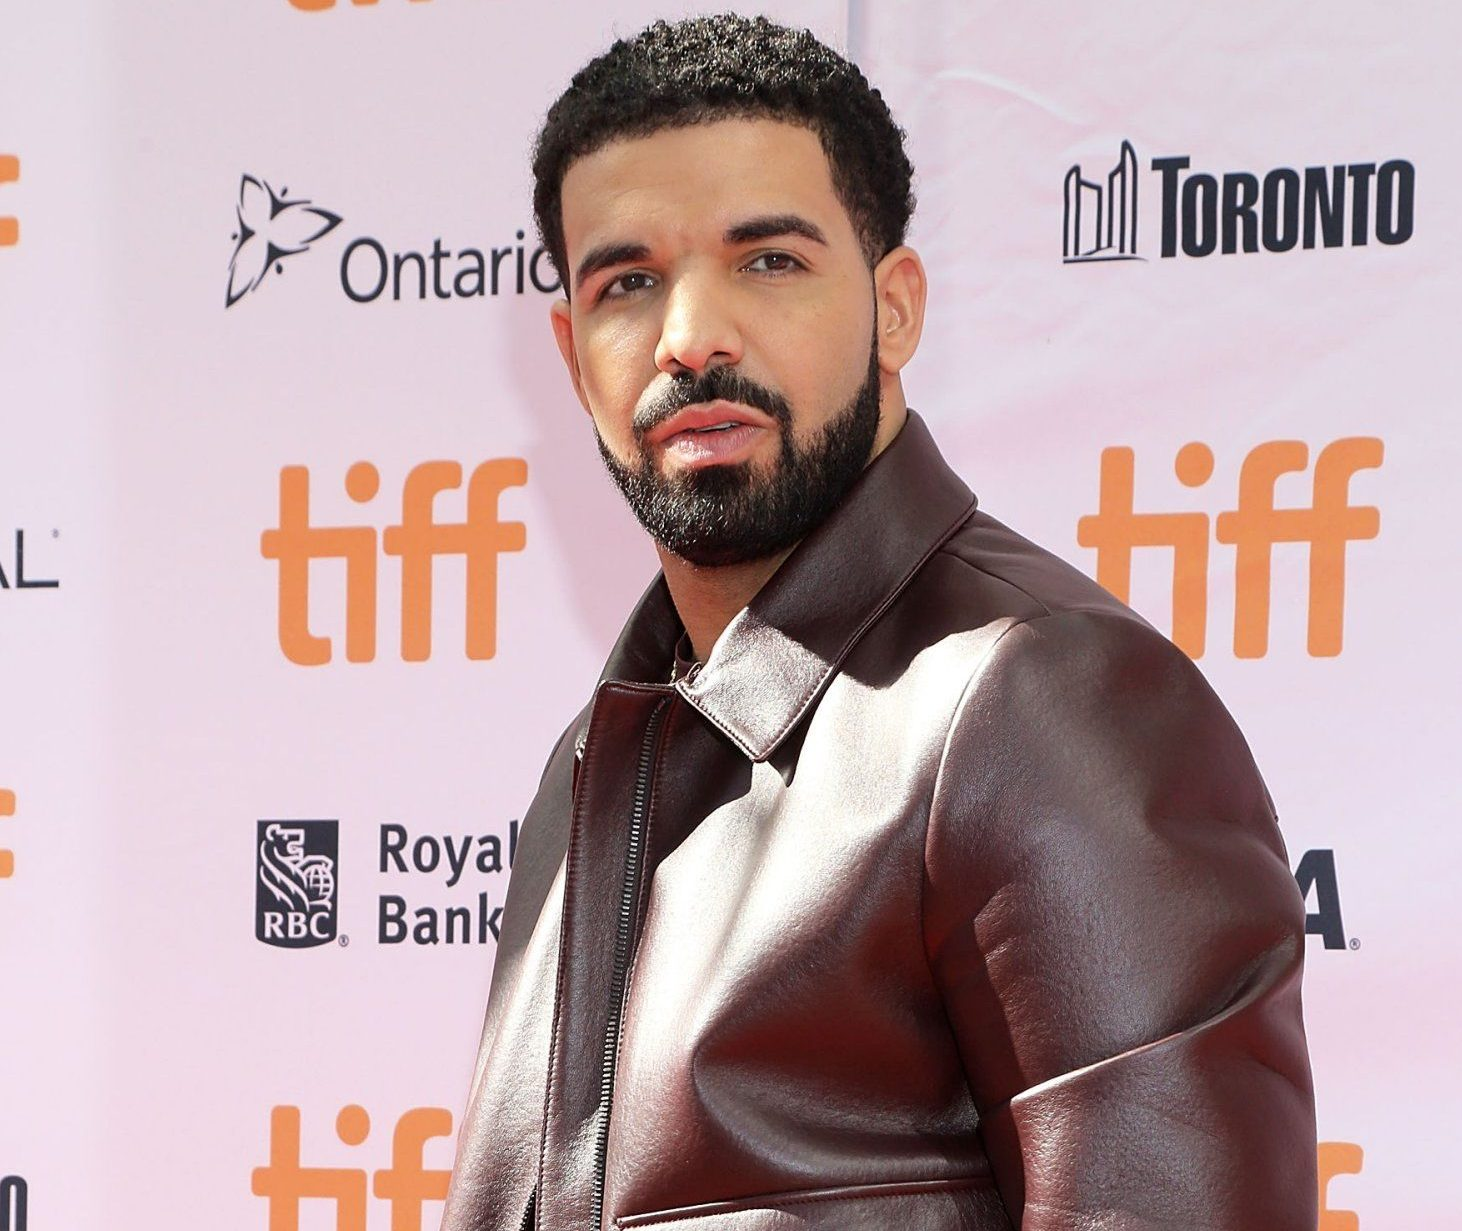 TORONTO, ON - SEPTEMBER 09: Drake attends 'The Carter Effect' premiere during the 2017 Toronto International Film Festival at Princess of Wales Theatre on September 9, 2017 in Toronto, Canada. (Photo by Isaiah Trickey/FilmMagic)